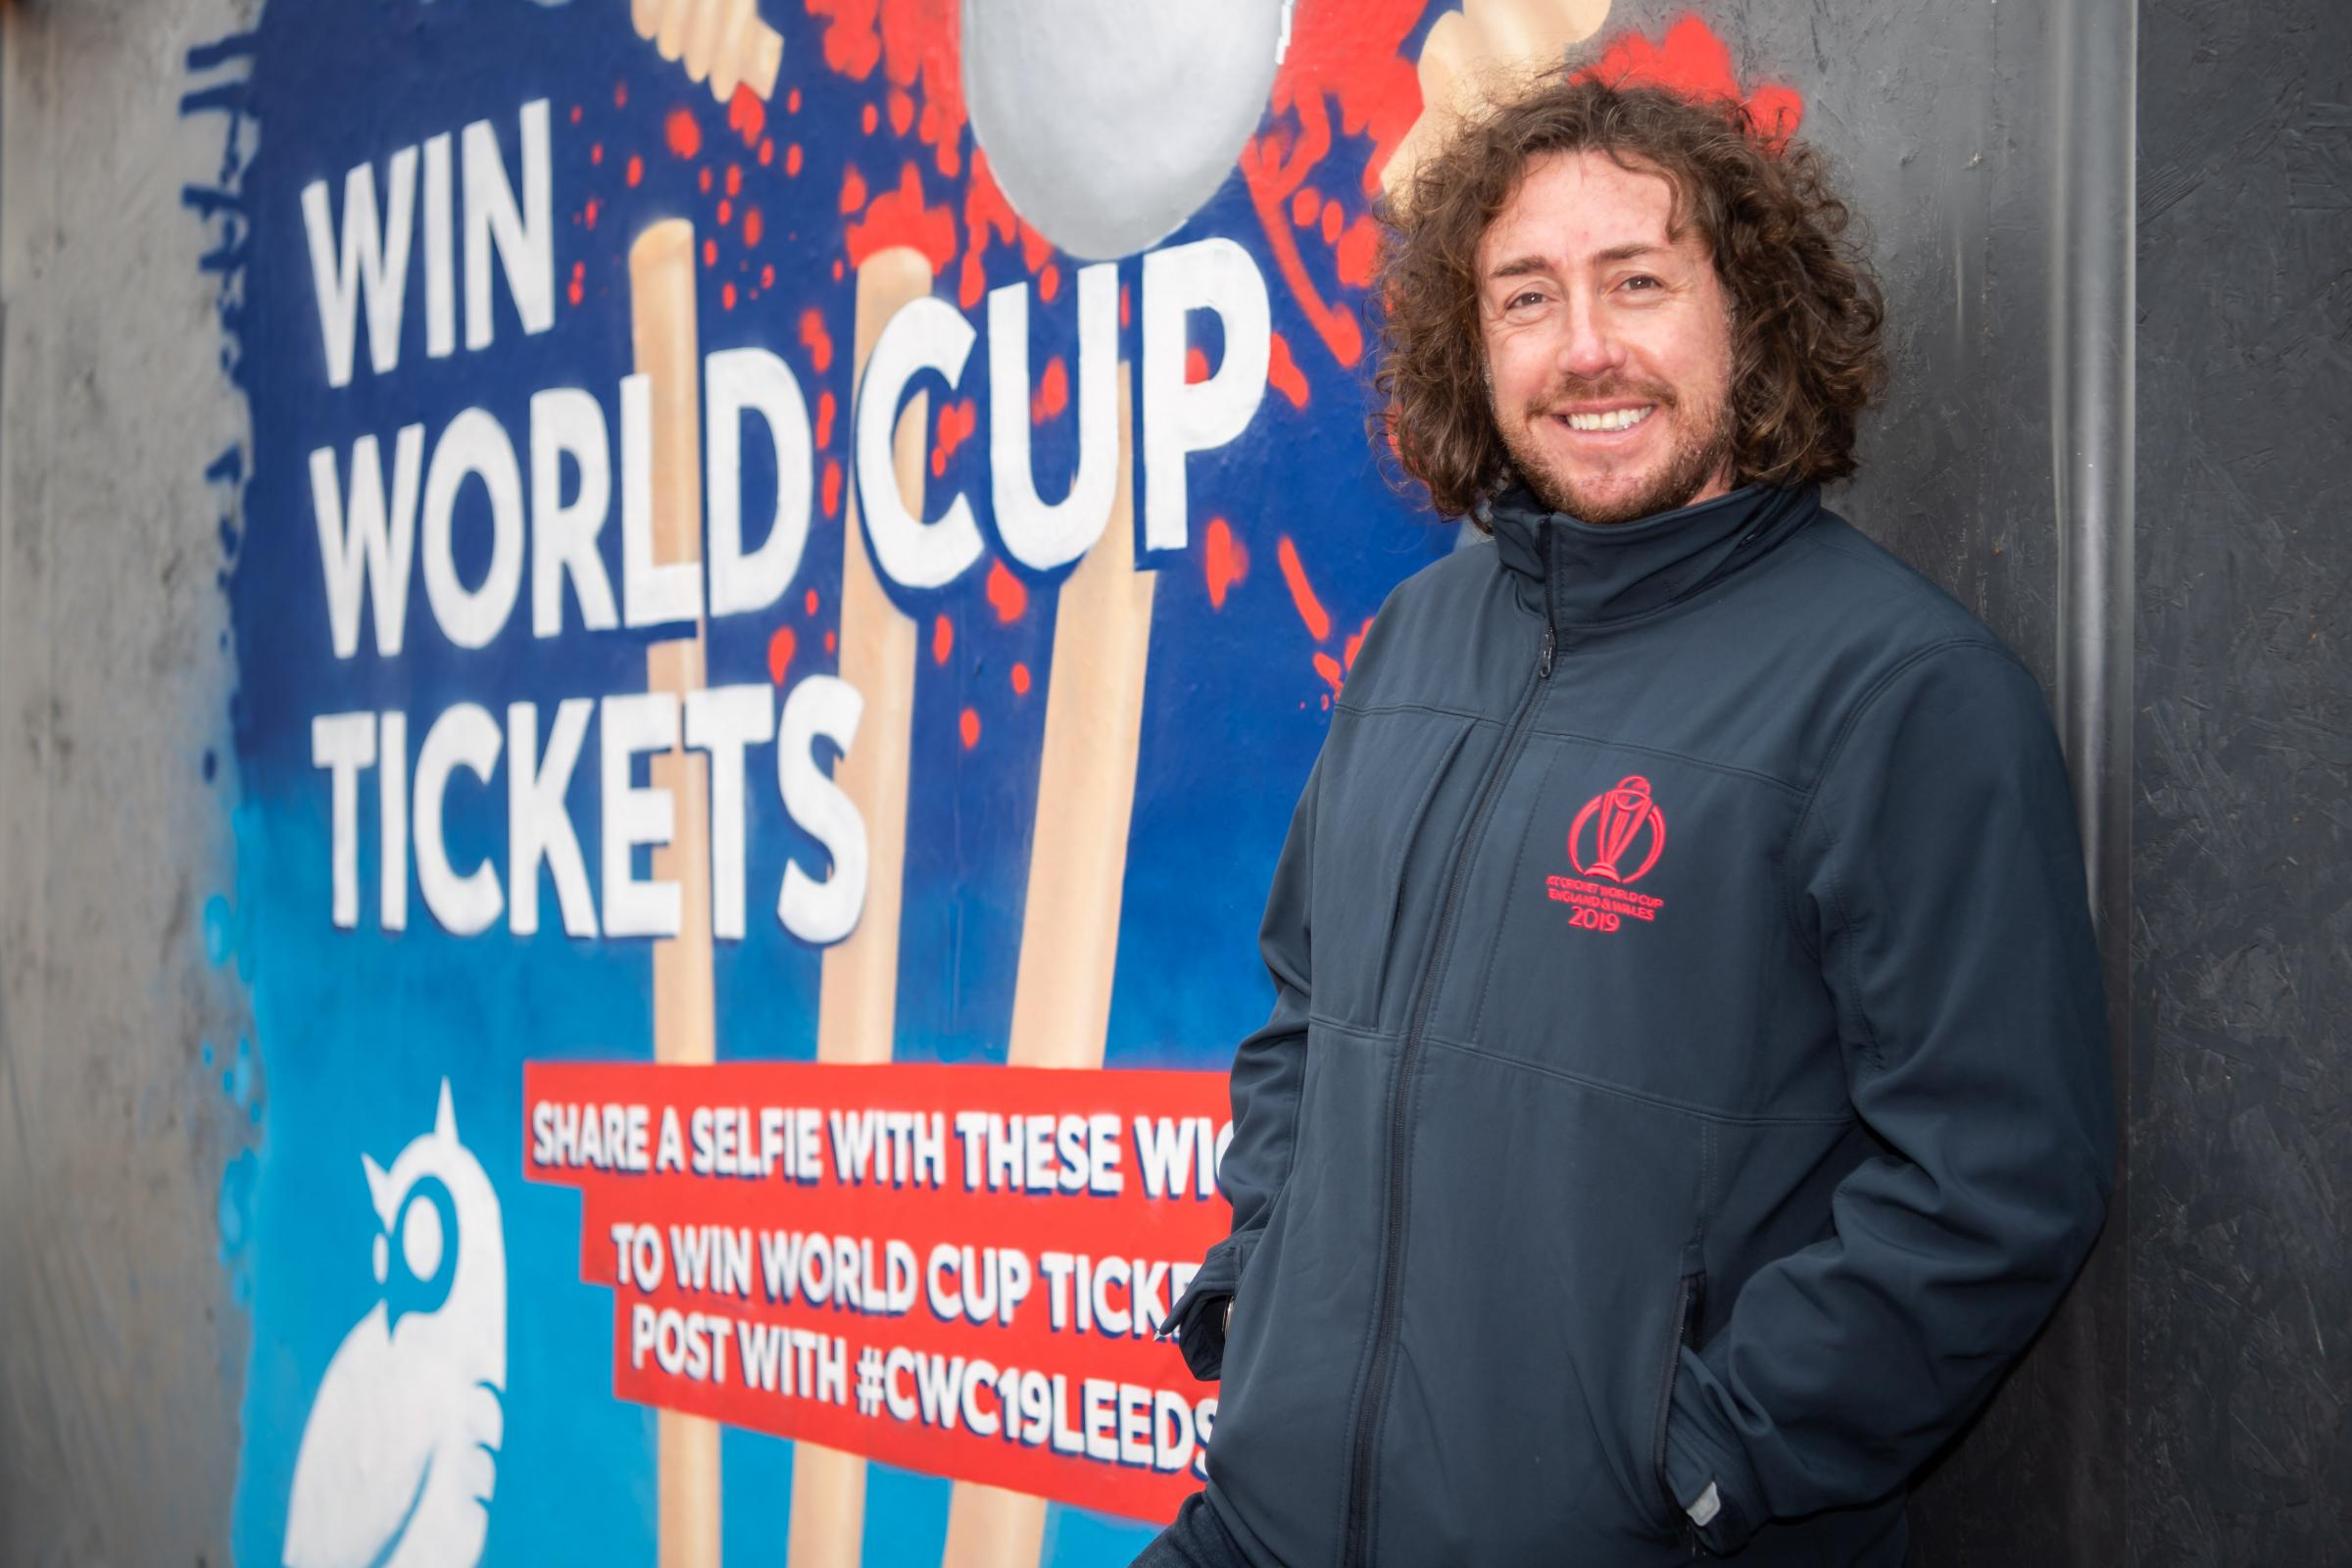 Ryan Sidebottom is disappointed that England are unlikely to pick Sam Curran for the World Cup